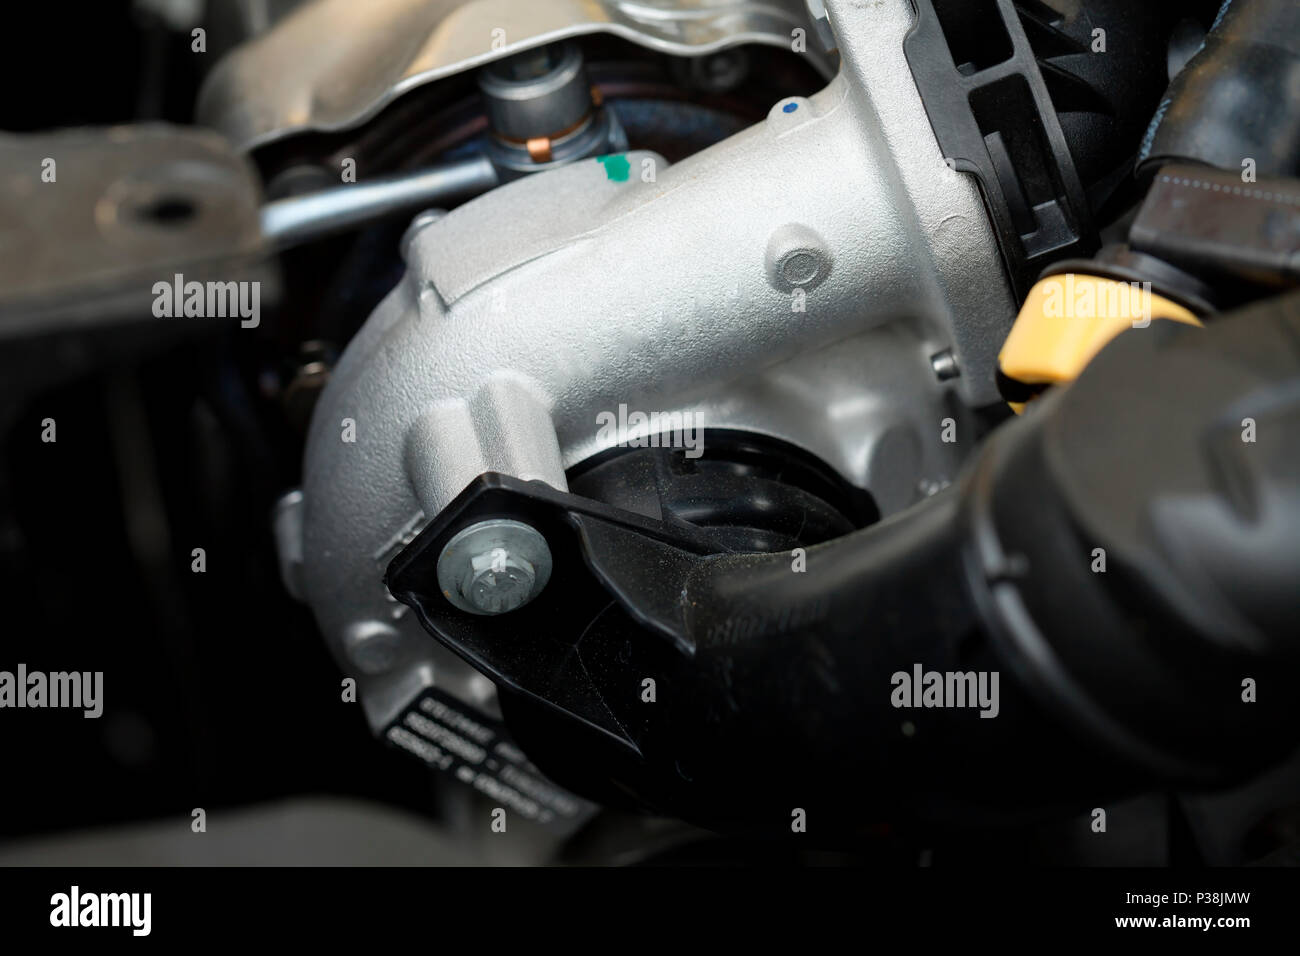 Turbo Charger Stock Photos & Turbo Charger Stock Images - Alamy